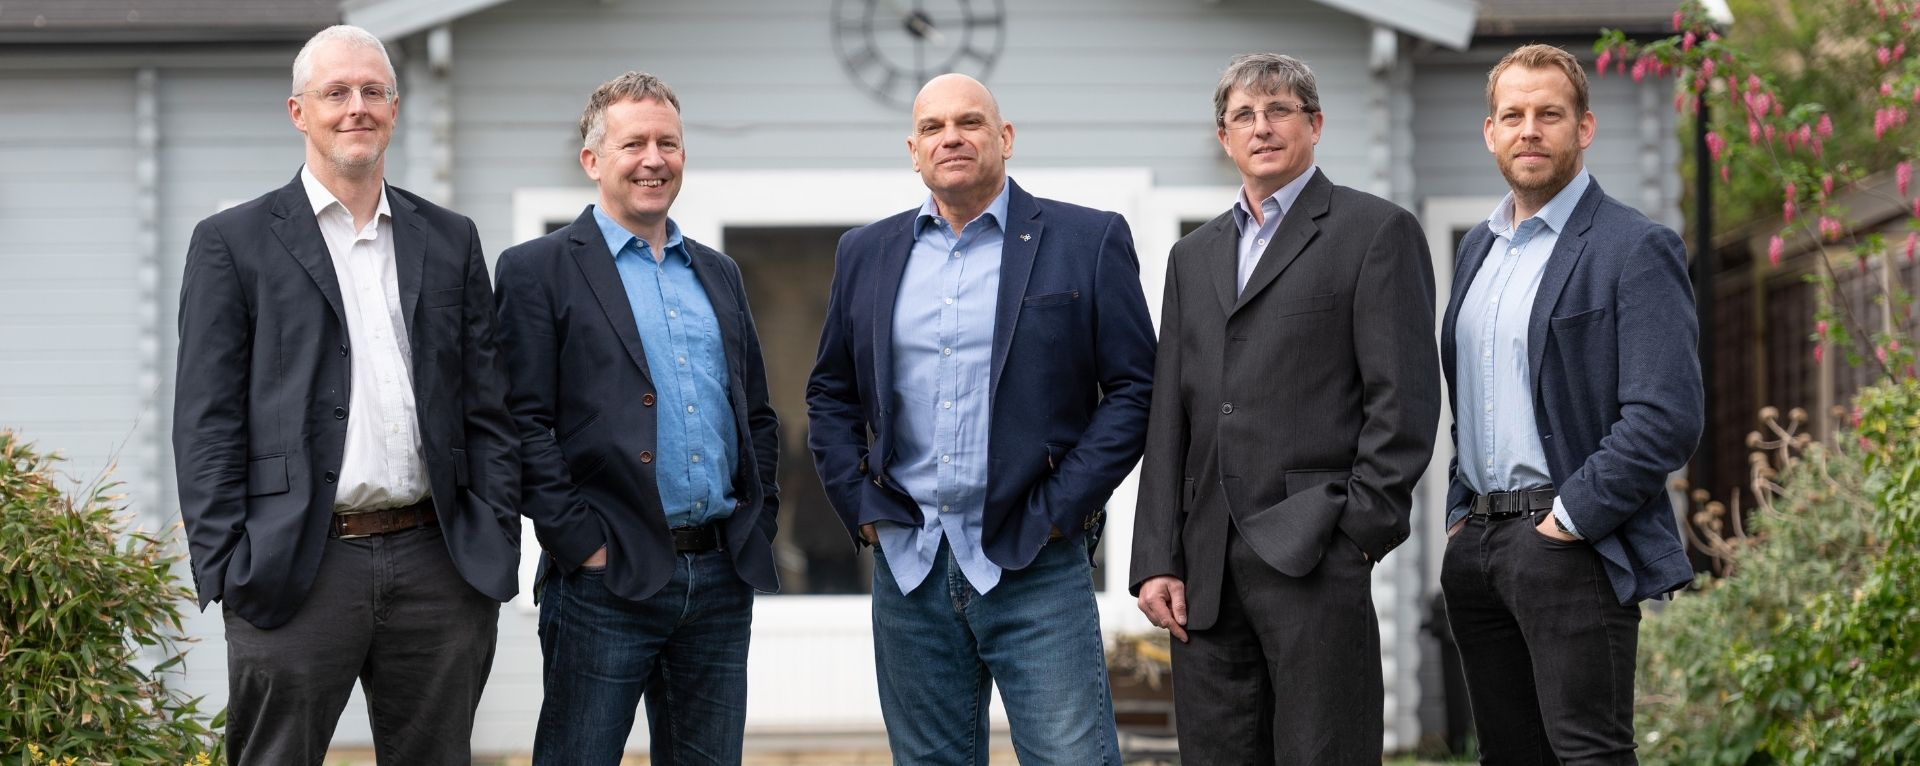 (L-R) Working with Sugar PR to announce the £1.5 seed funding round are the iKVA team of Prof Richard Mortier, CTO Dr Chris Doran, Chairman Jon Horden, CEO, Ian Firth, CPO Leon Challenger, Head of Sales 2021